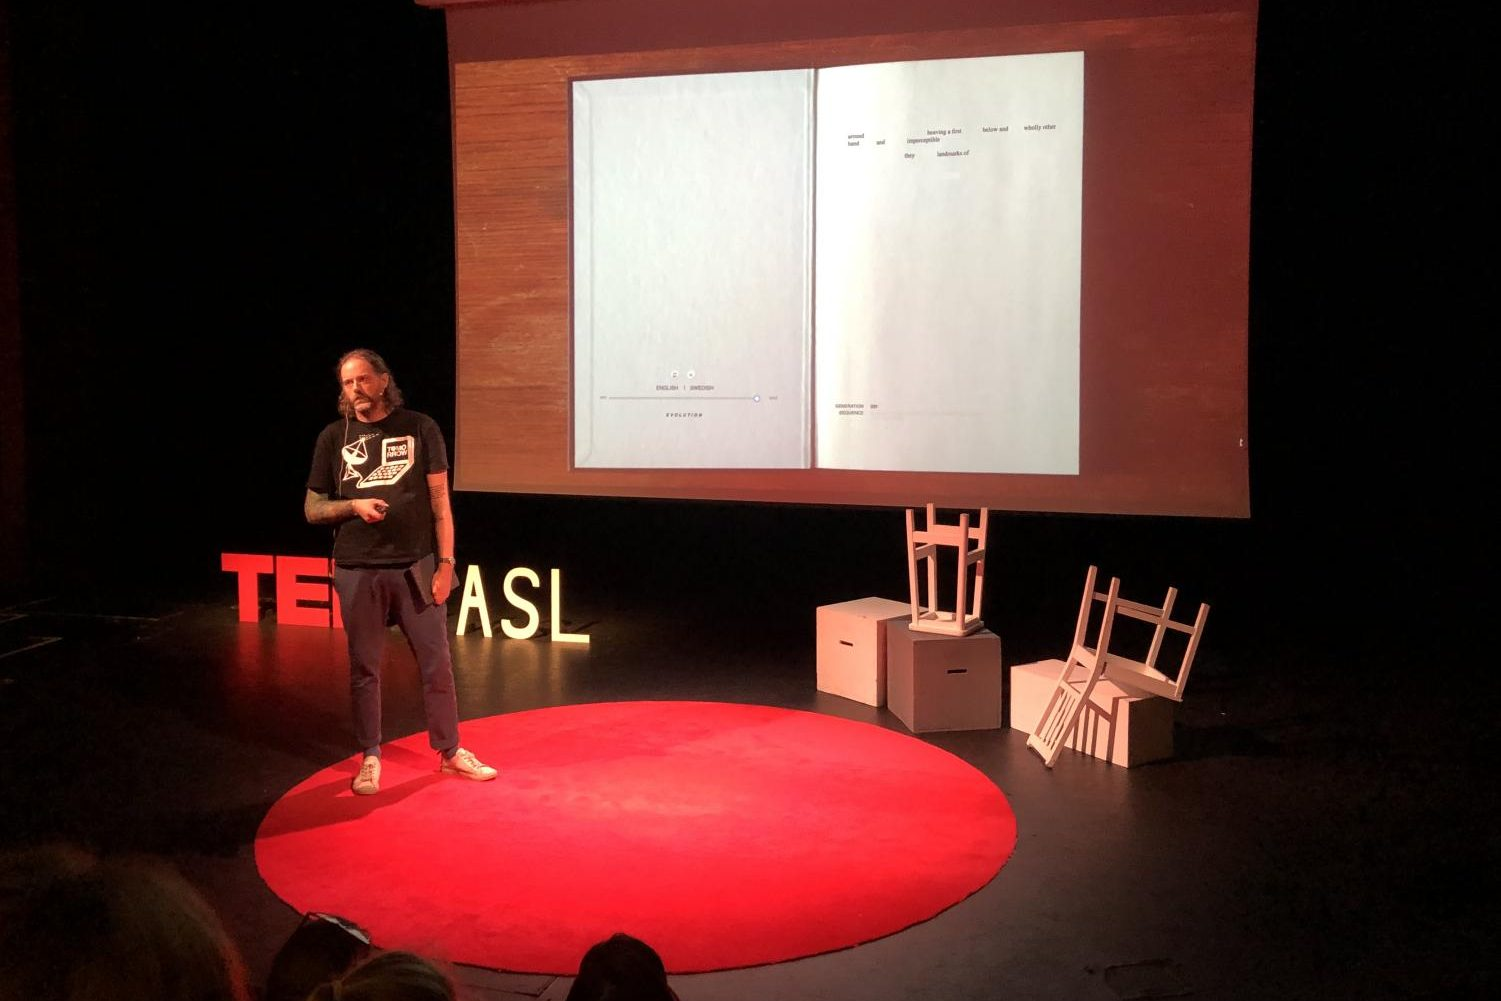 Johannes Helberg was the seventh speaker of event. He describes his constantly adapted poem where AI constantly adapts his poem to try and write using his voice.